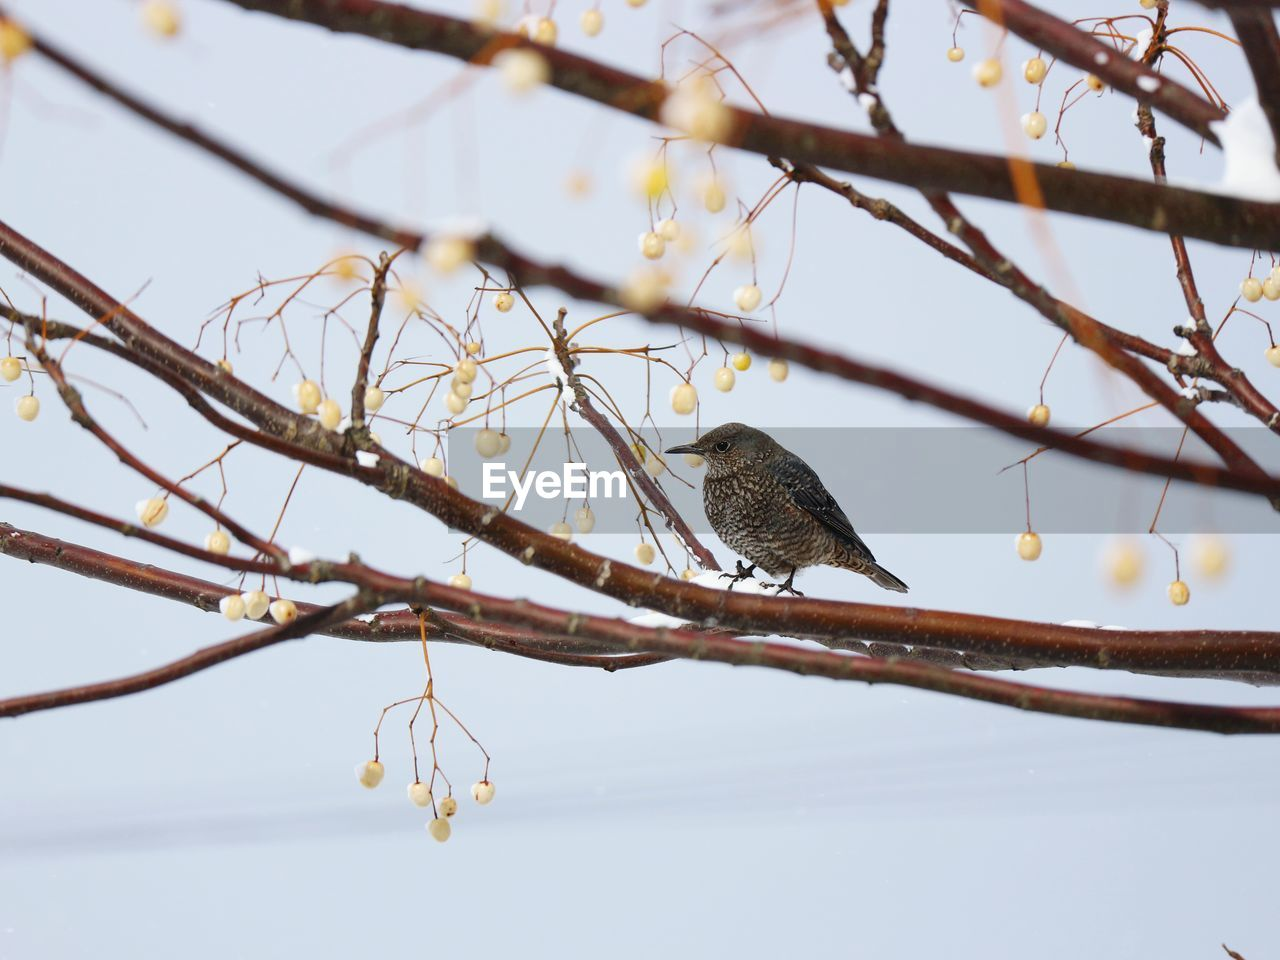 one animal, branch, animals in the wild, perching, bird, animal themes, focus on foreground, animal wildlife, no people, nature, tree, day, outdoors, beauty in nature, robin, close-up